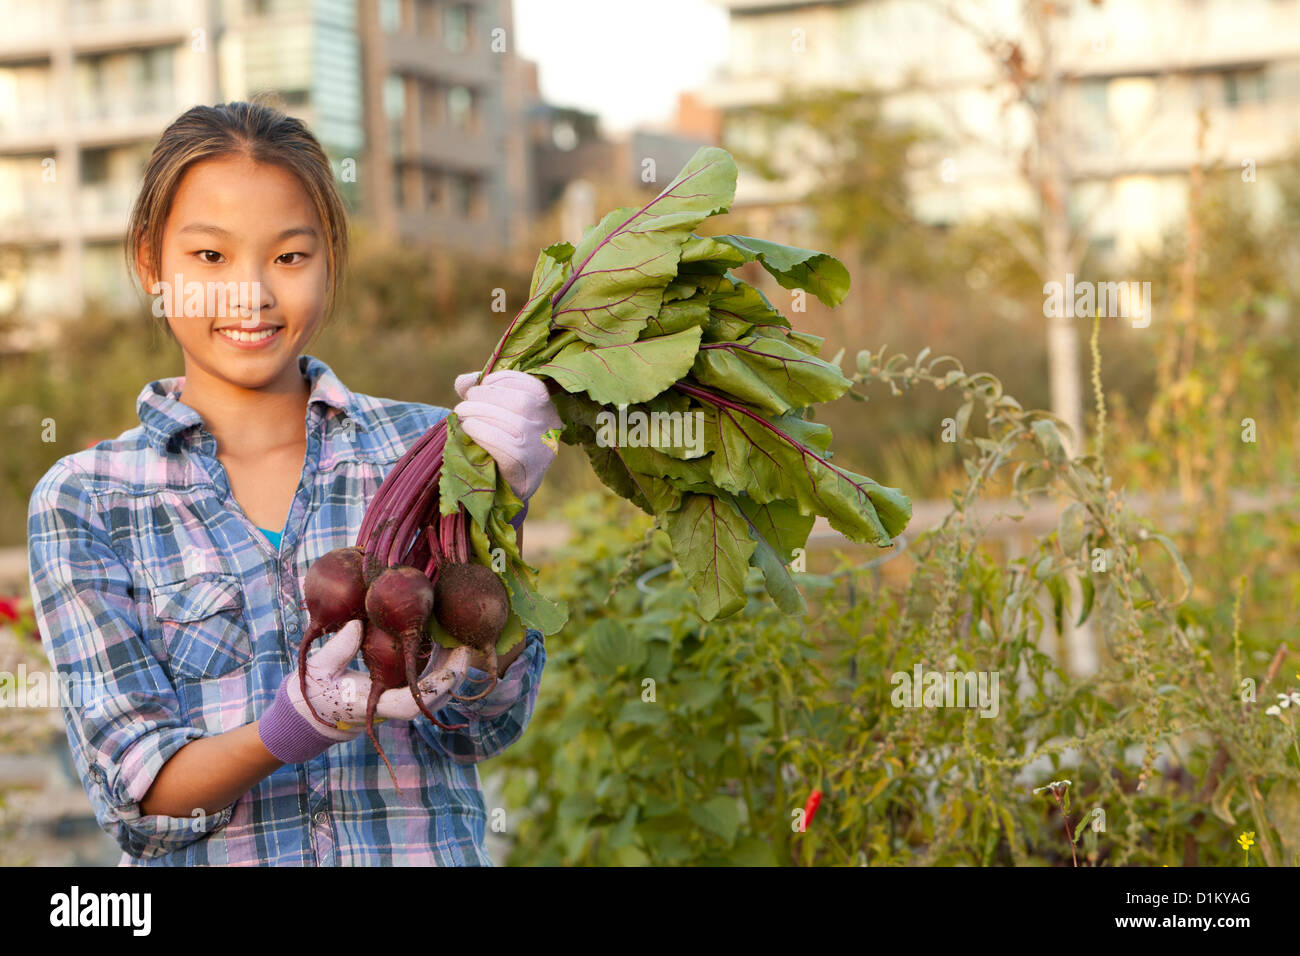 Japanese girl holding bunch of beets Stock Photo